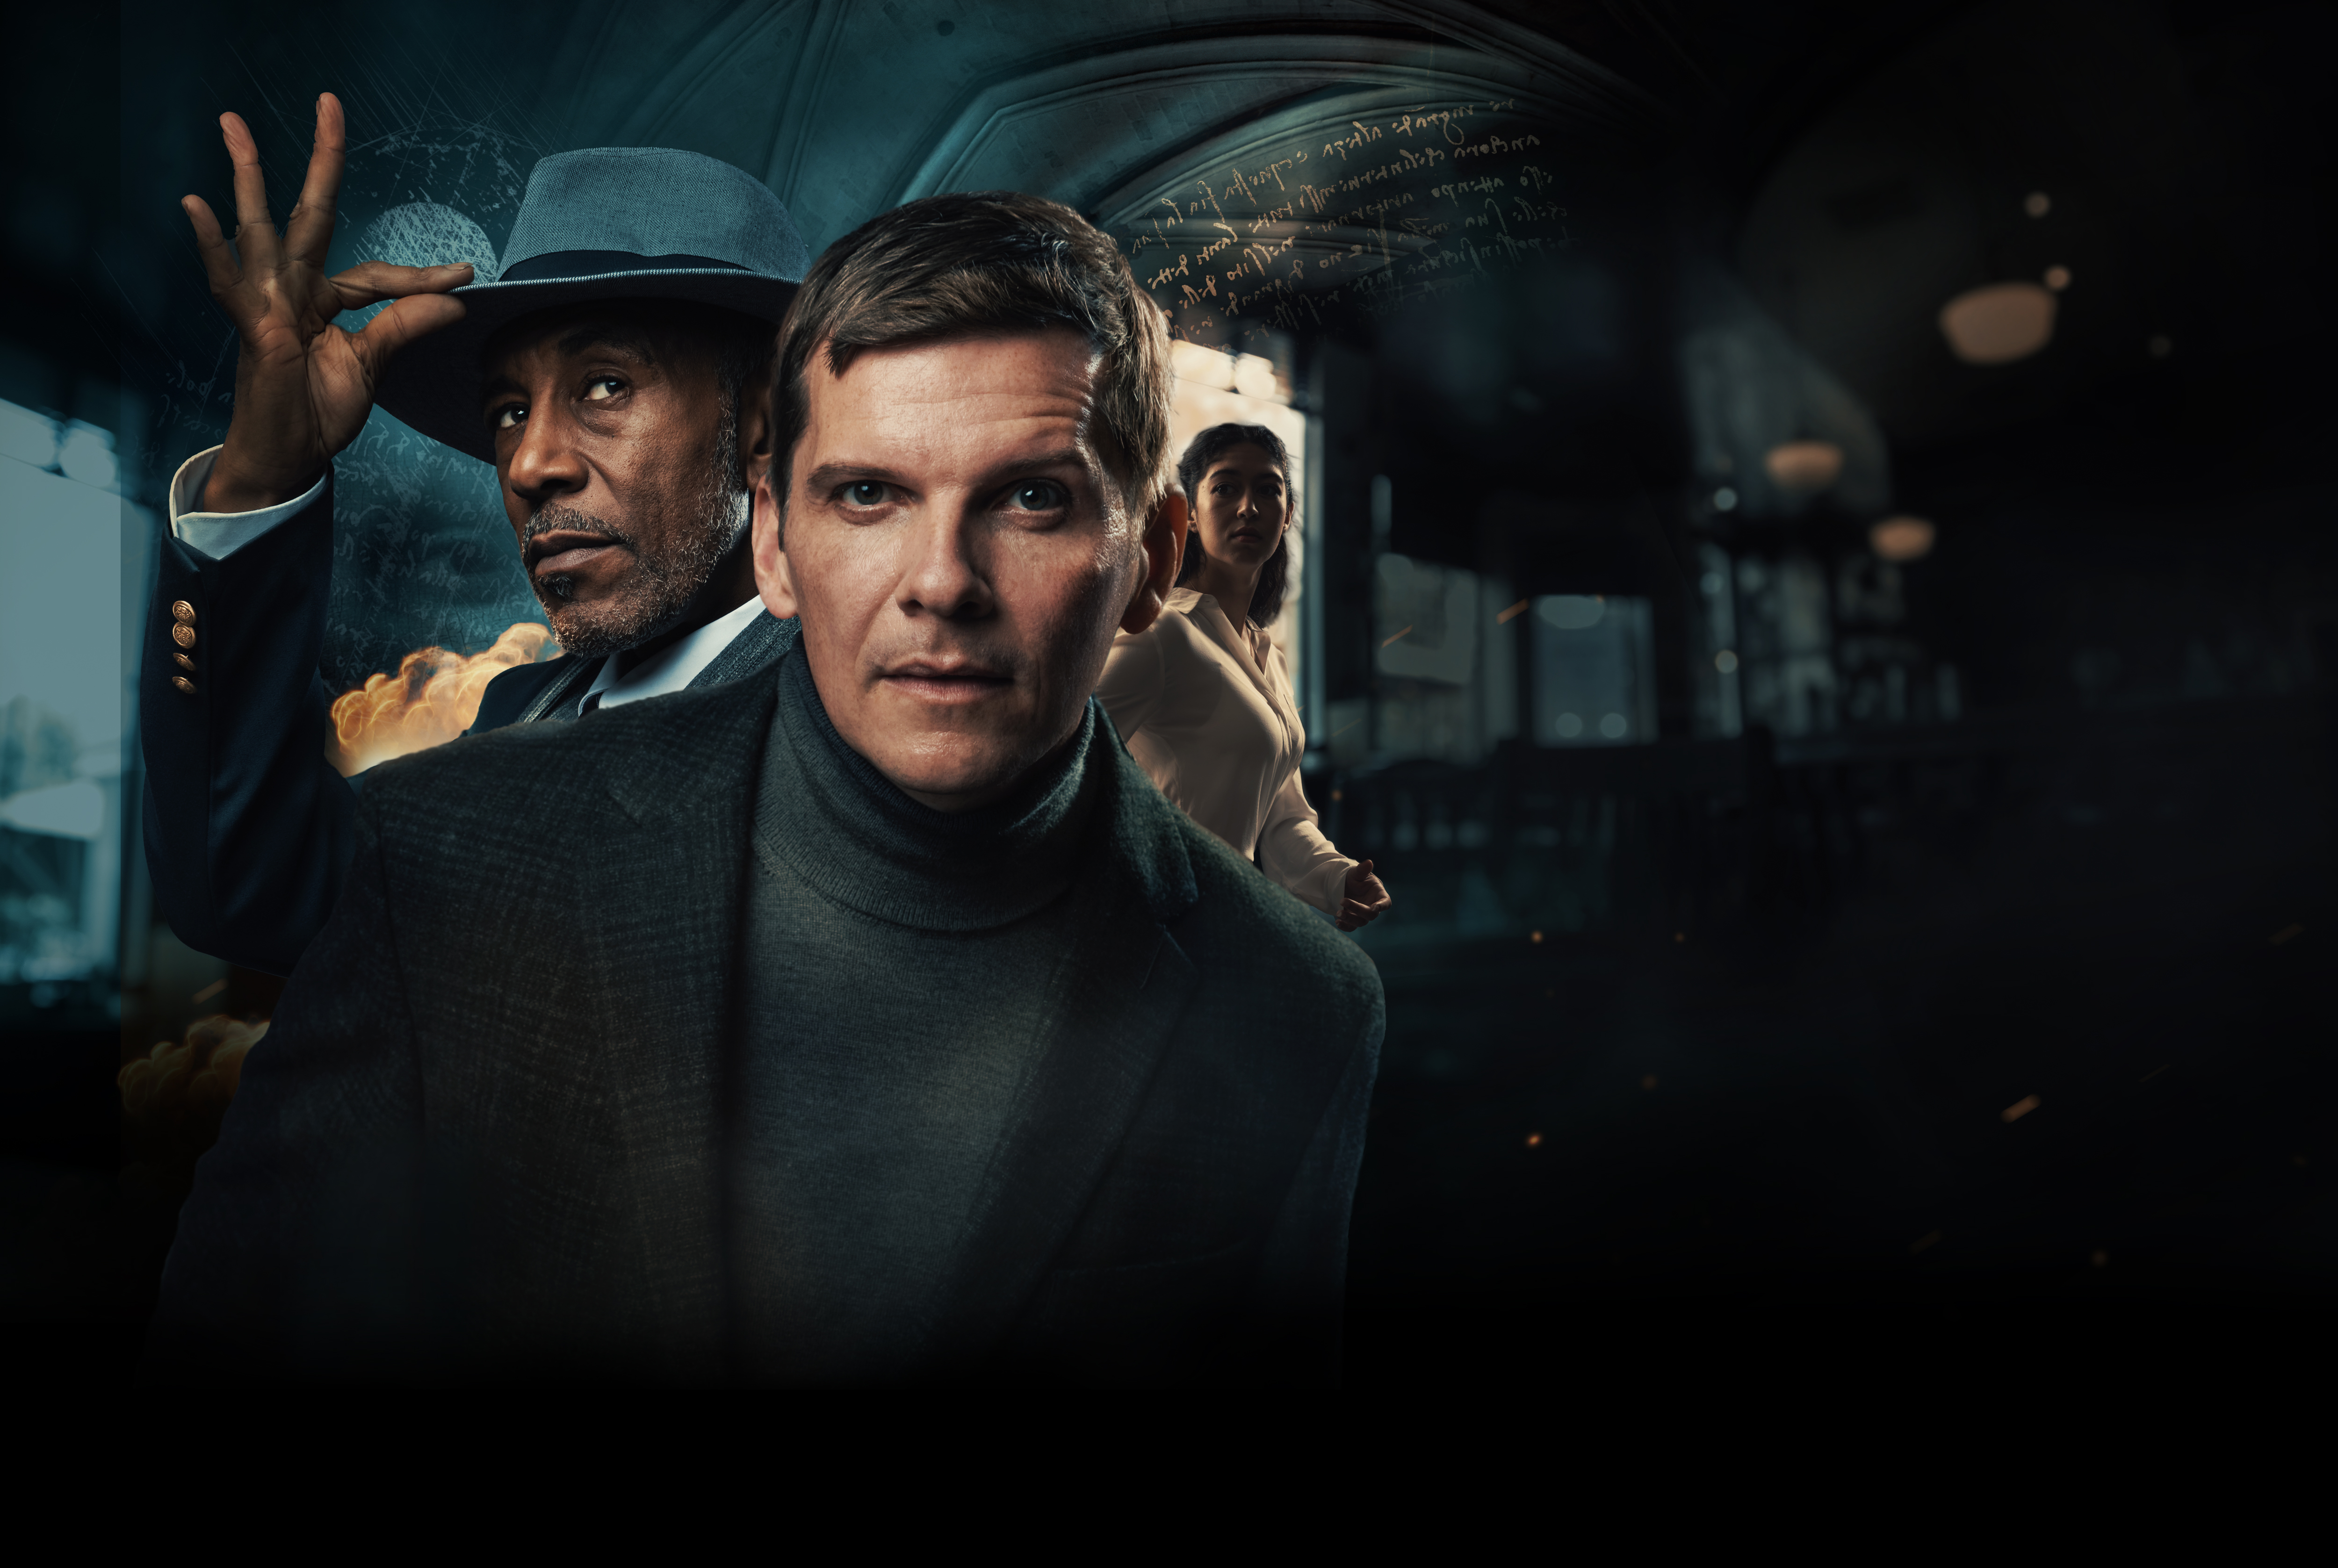 Background image of the cast